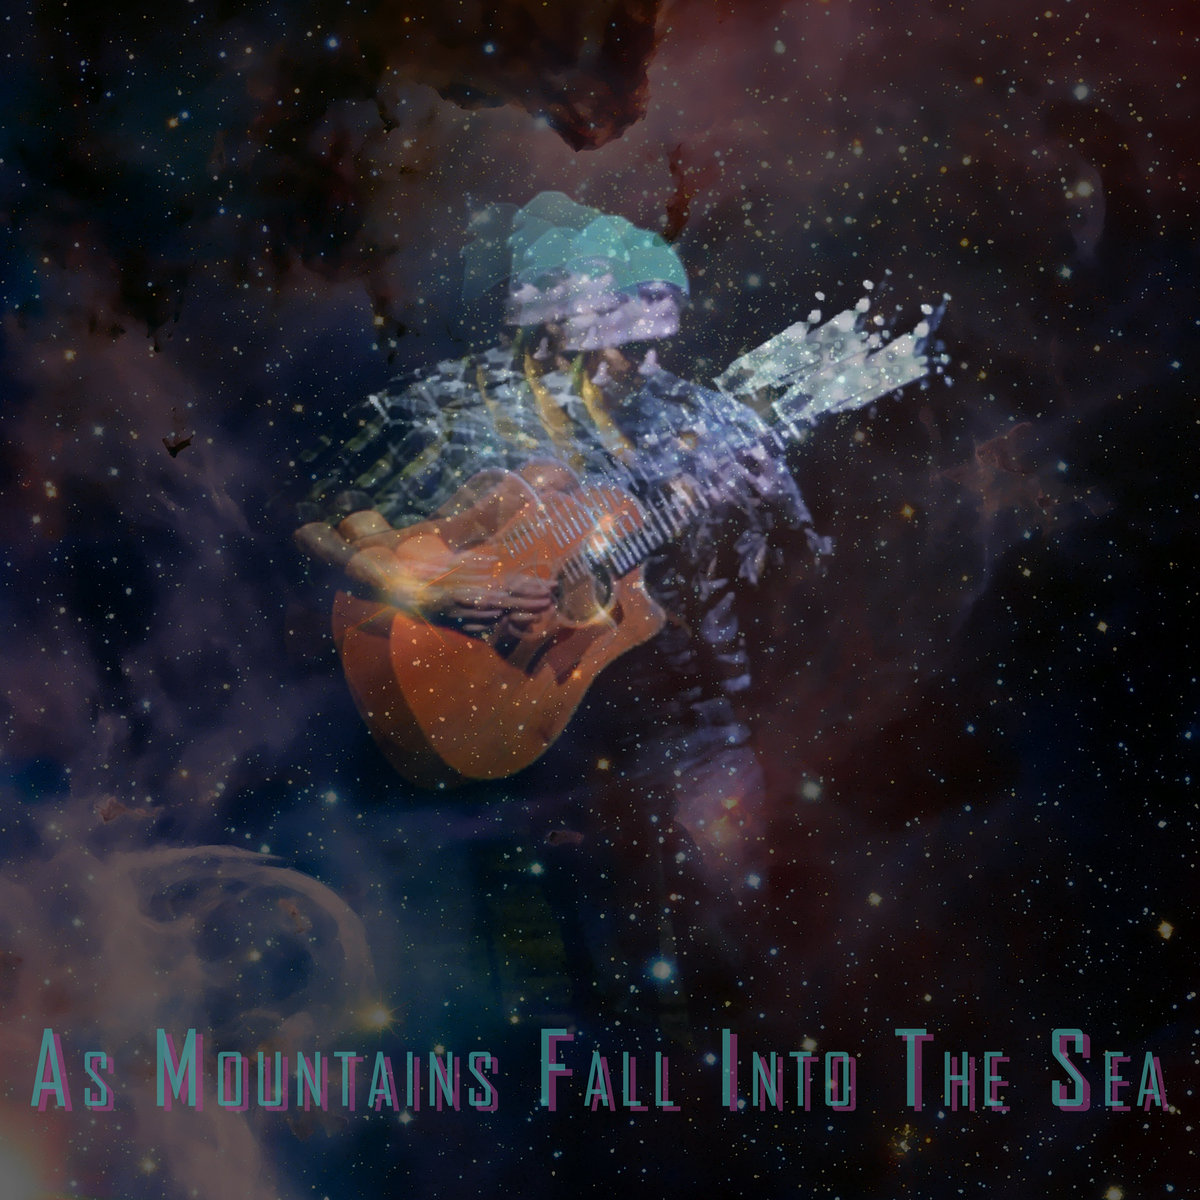 As Mountains Fall Into The Sea by Alex Brubaker